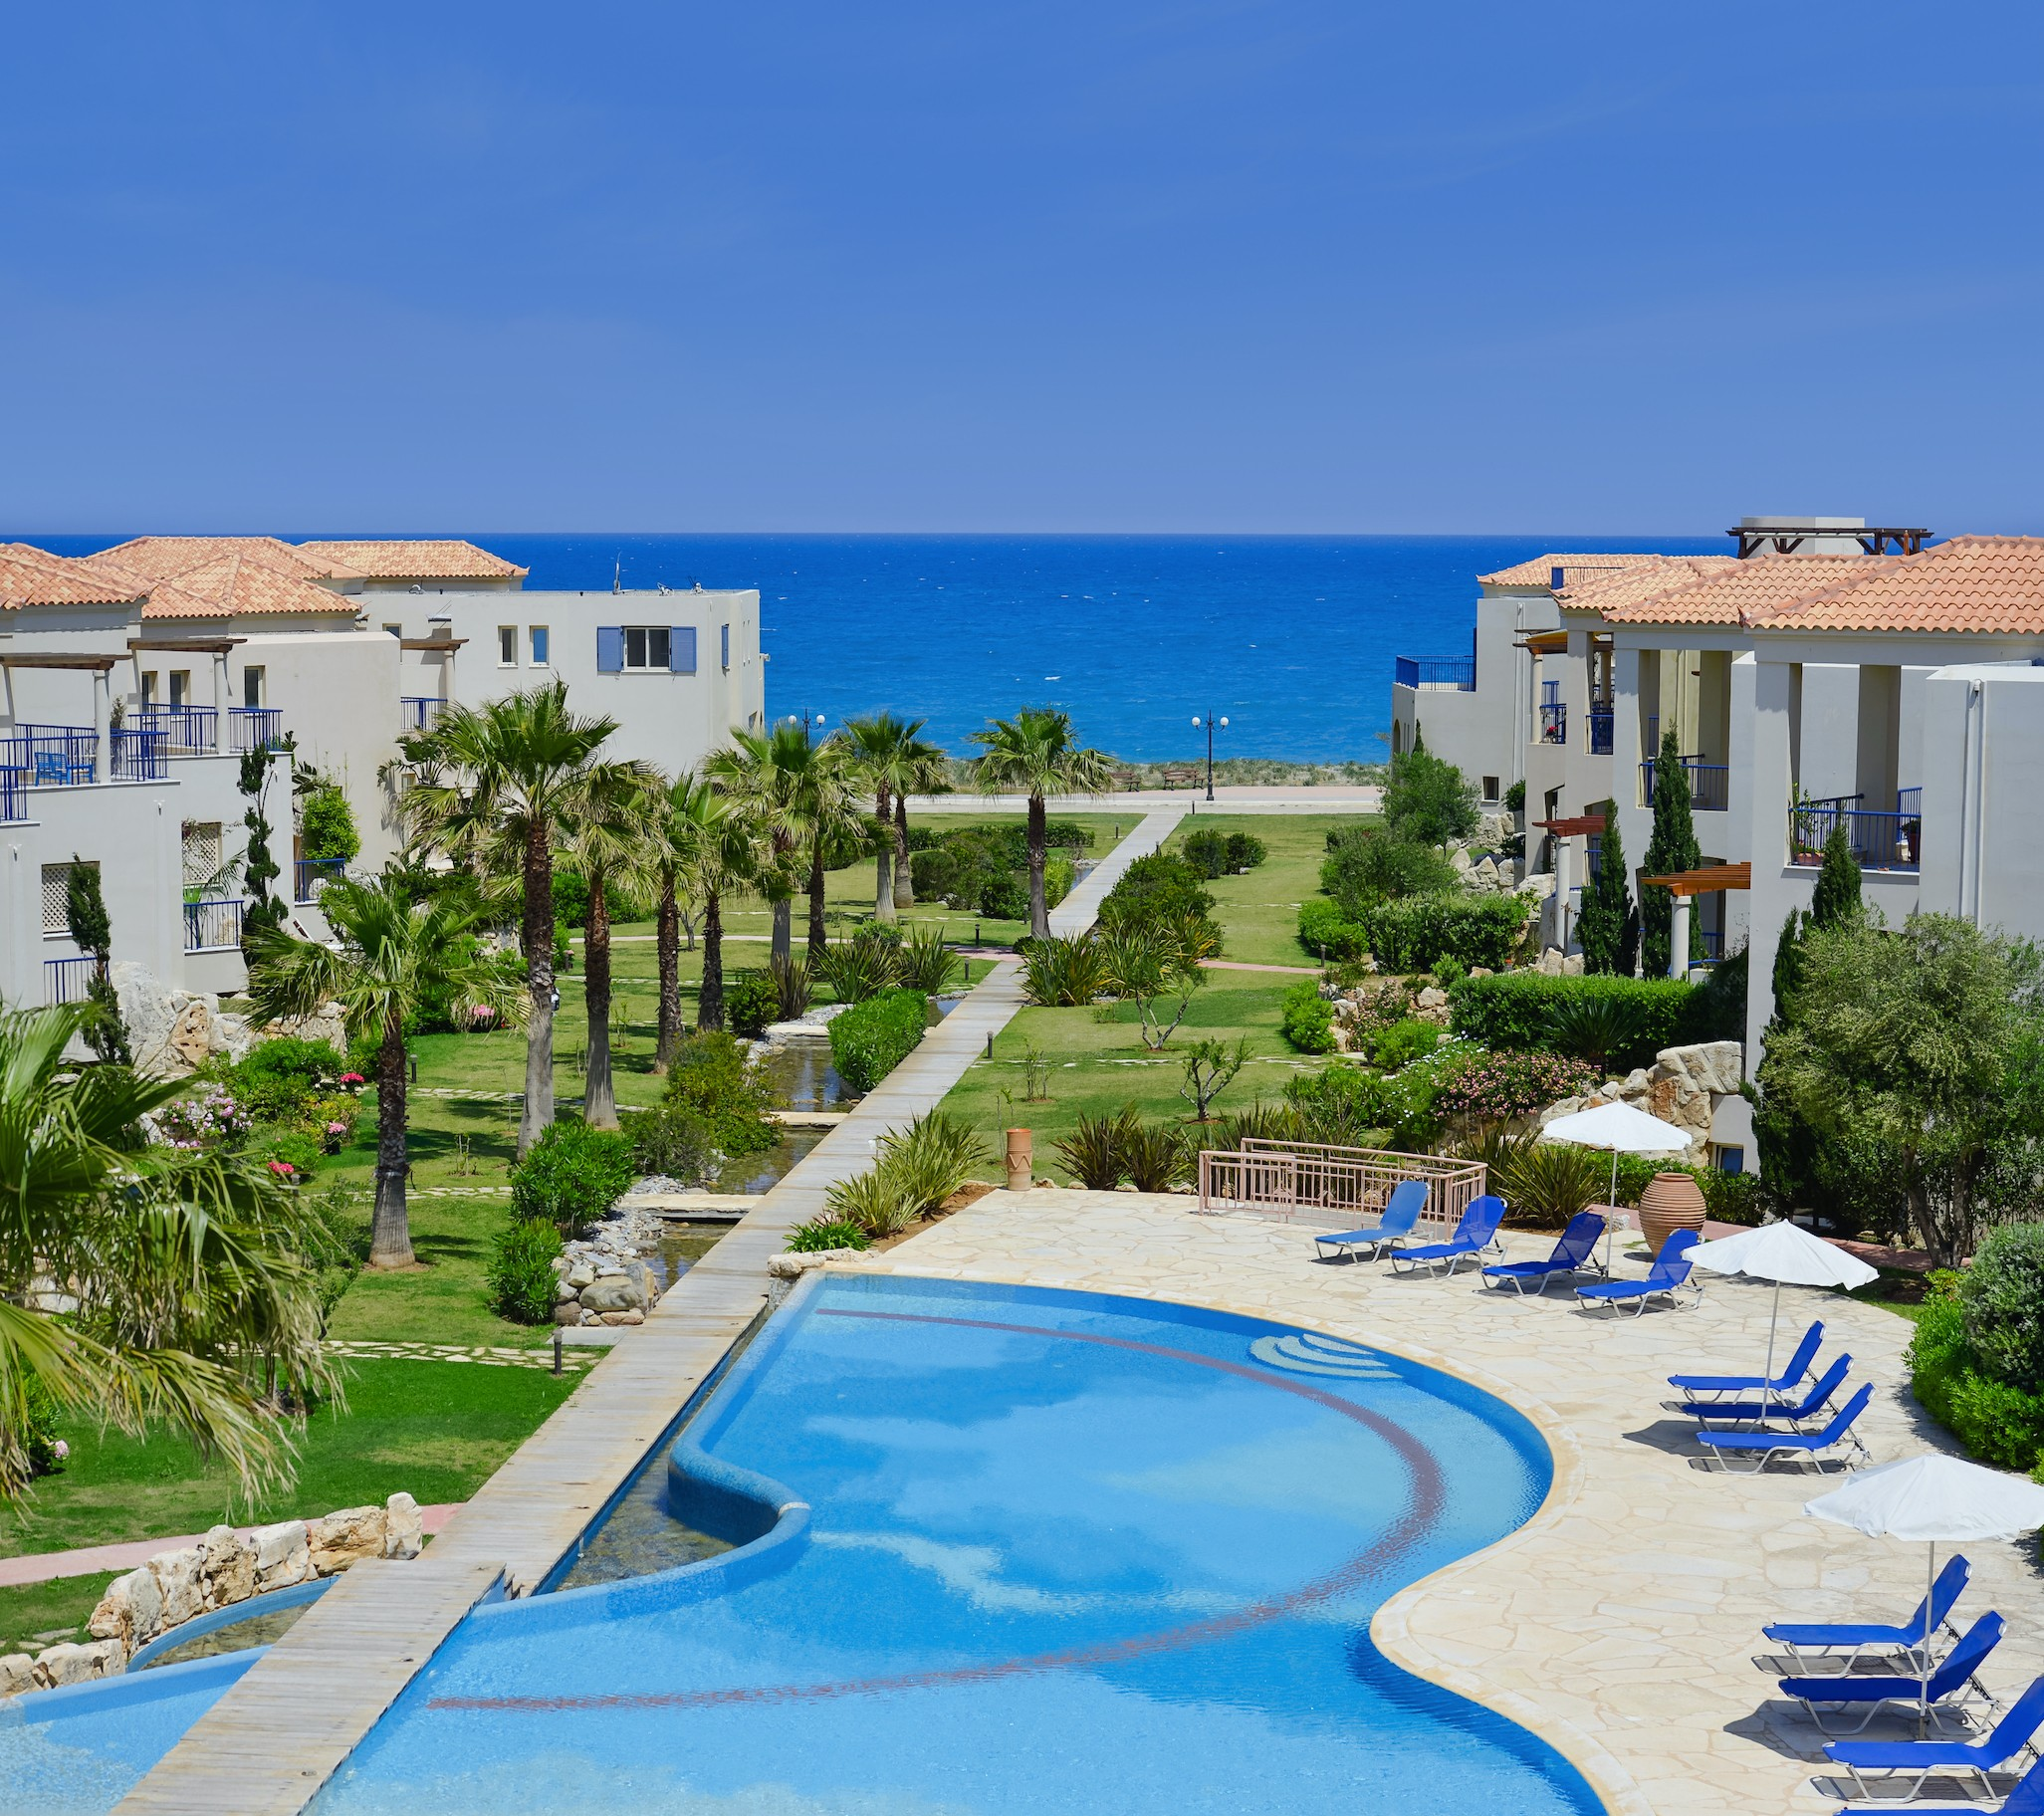 Qlistings - Aphrodite Seafront Apartments Property Image